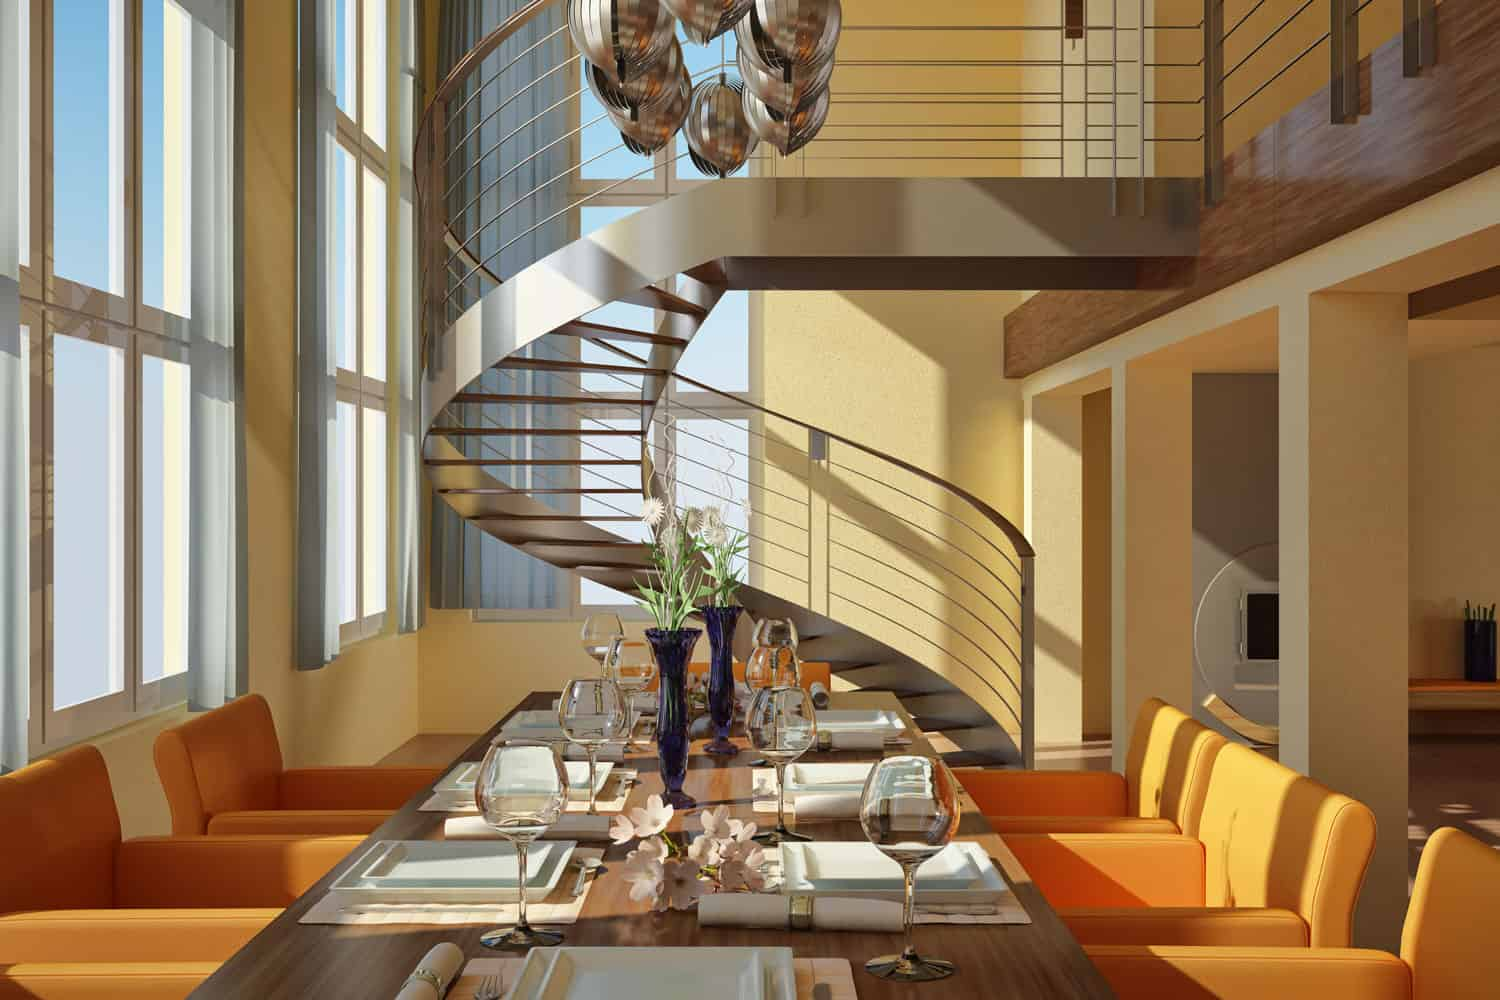 A metal spiral staircase inside an open space dining area